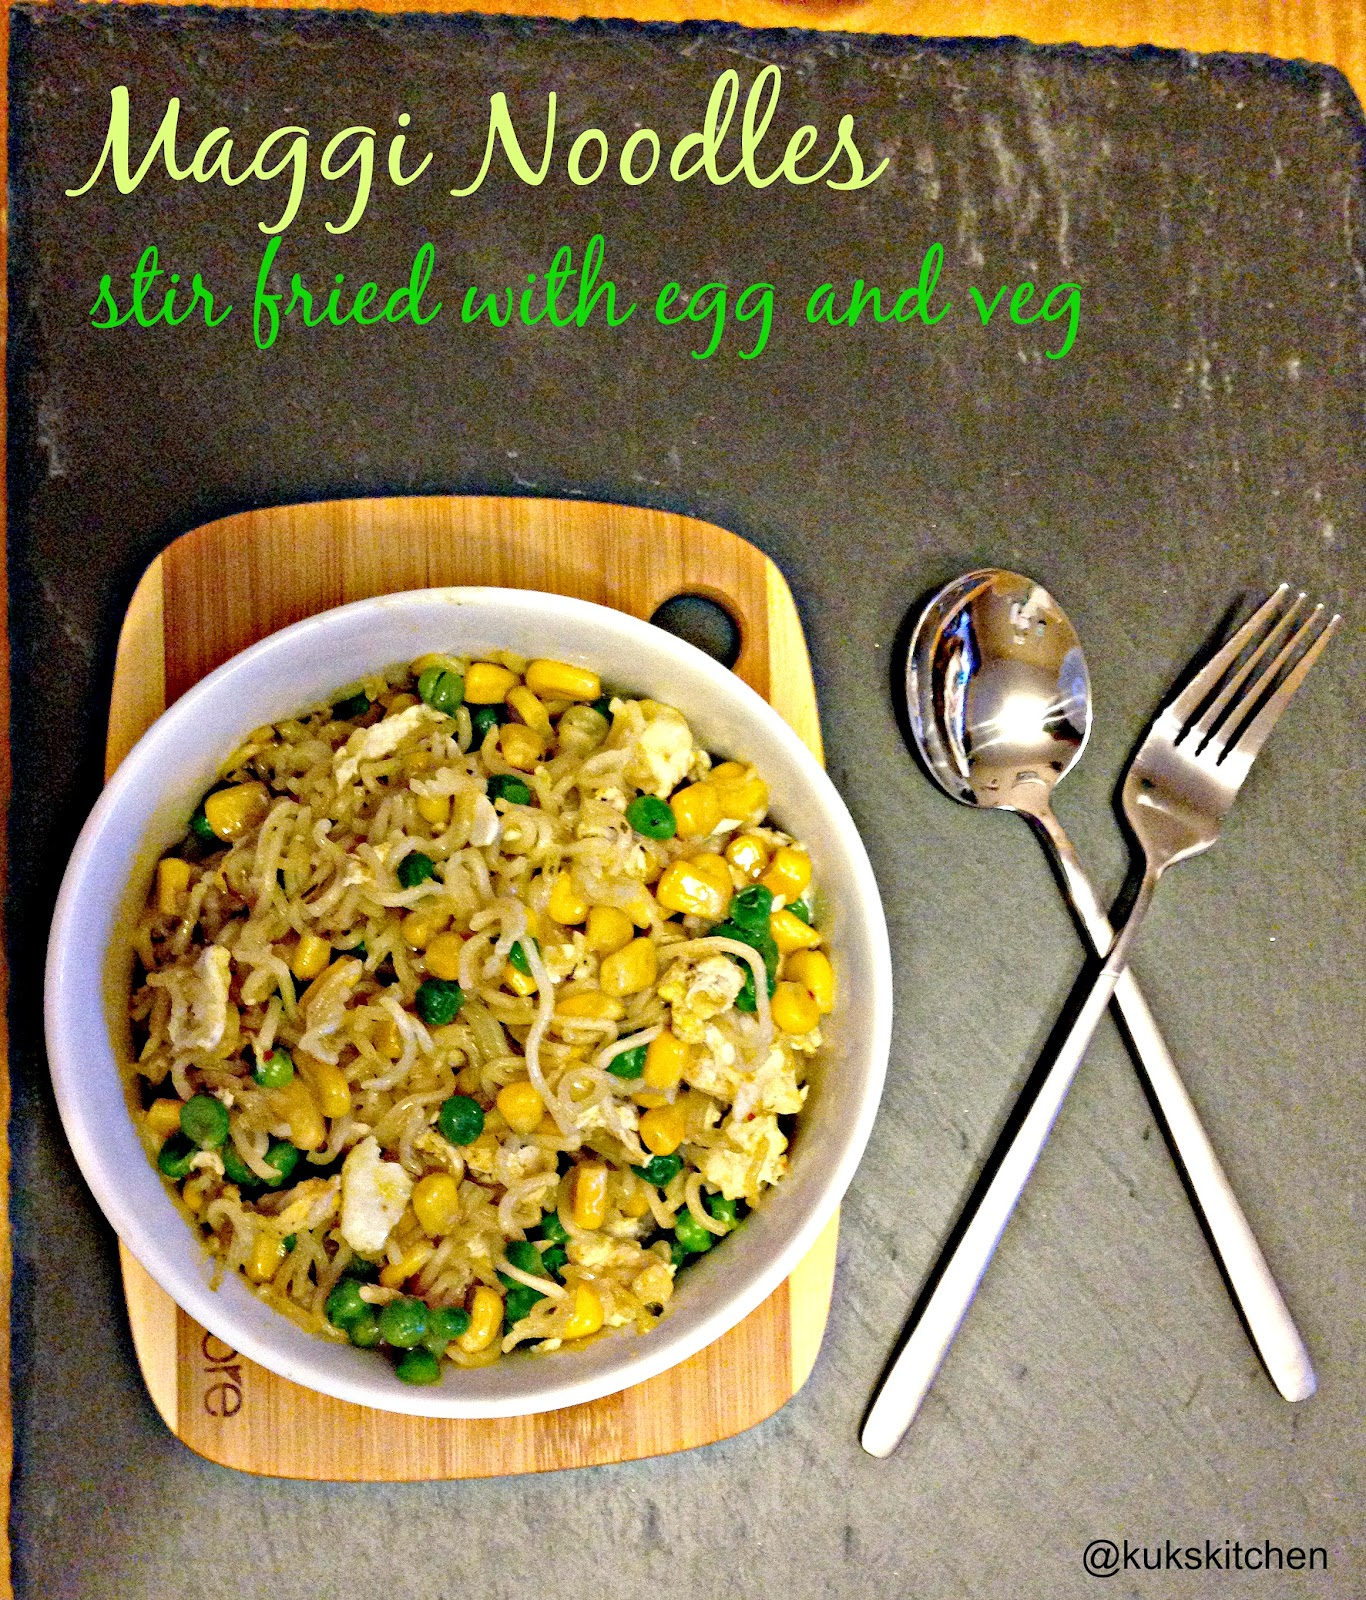 maggi noodles Maggi arabia offers a wide range of tasty products like noodles, soups, bouillons, and mixes also, explore our exciting and delicious recipes.